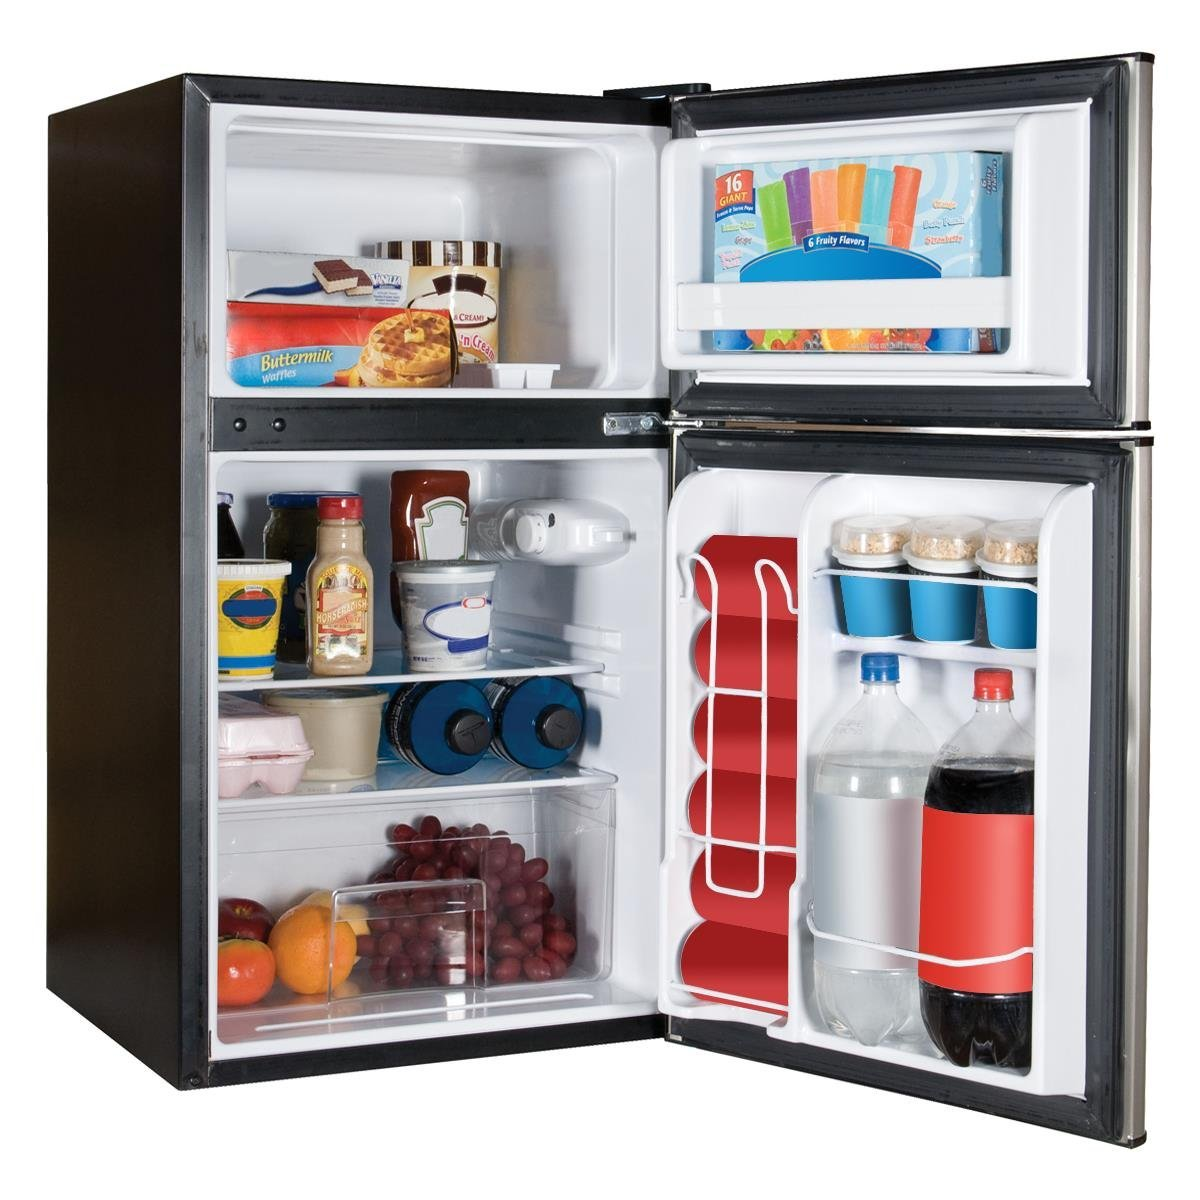 Top Mount Refrigerator/Freezer, Stainless Steel: Amazon.ca: Electronics Part 33